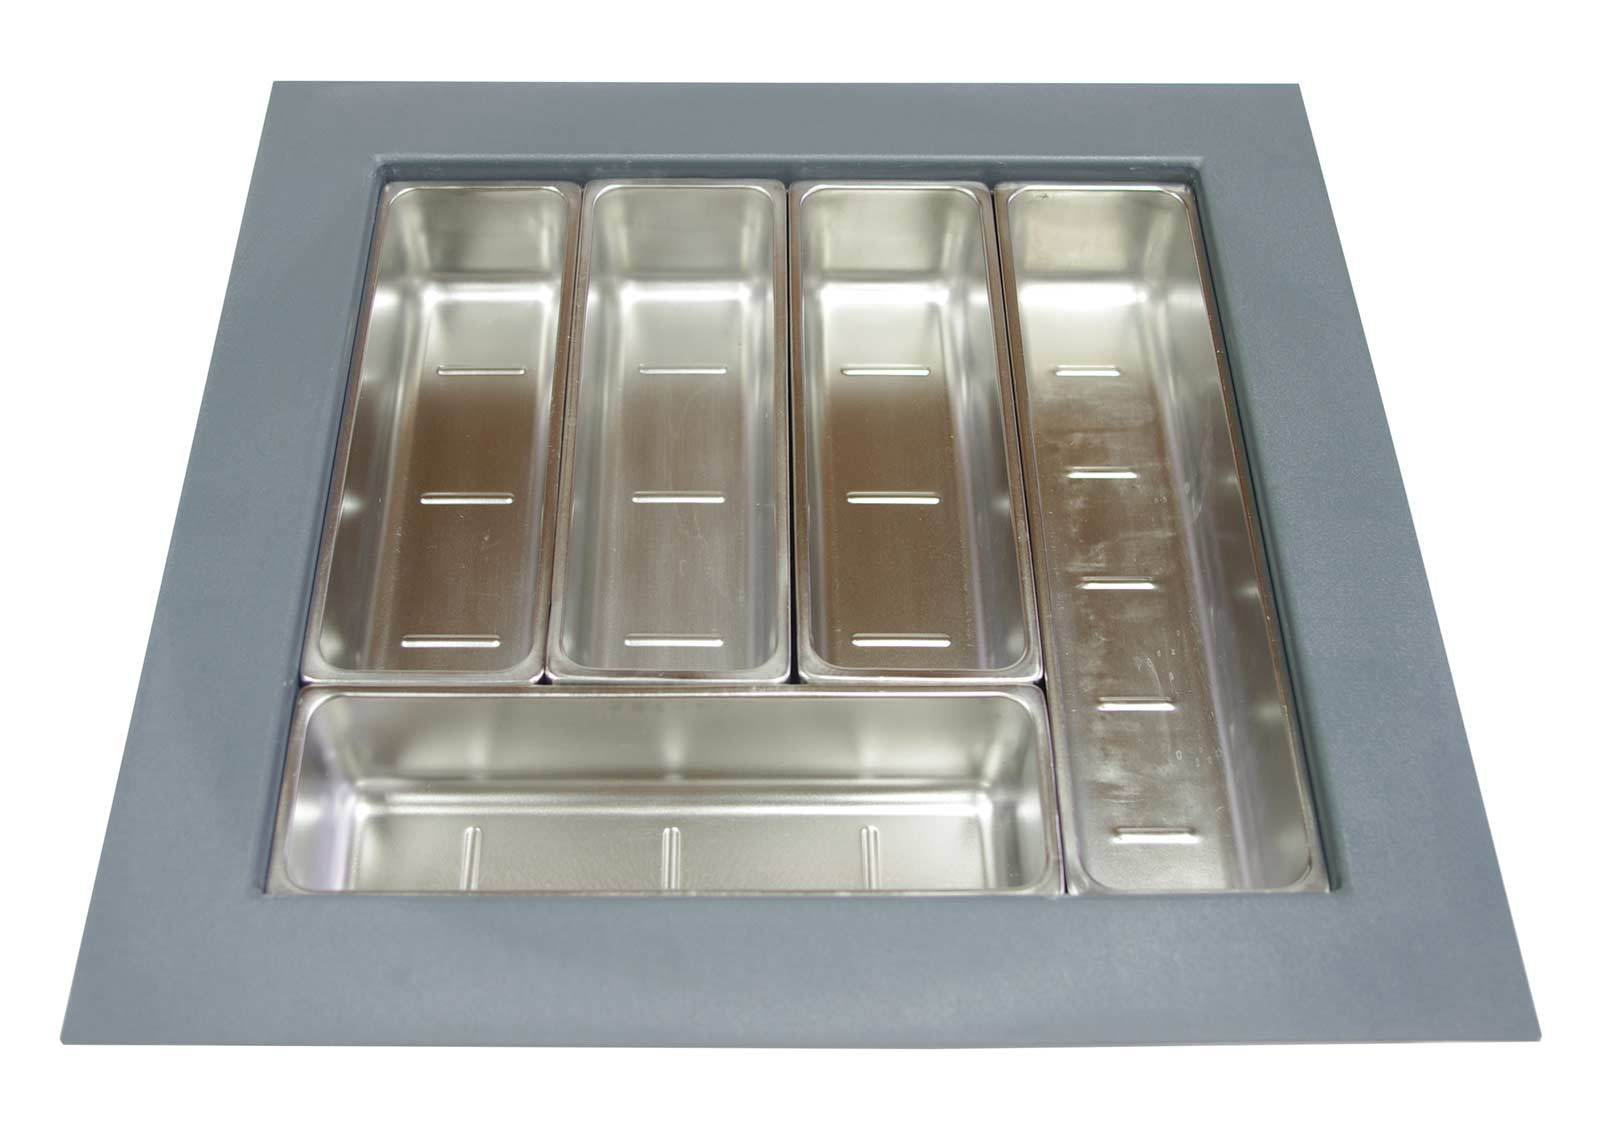 Kci03sg Stainless Steel Cutlery Drawer Insert